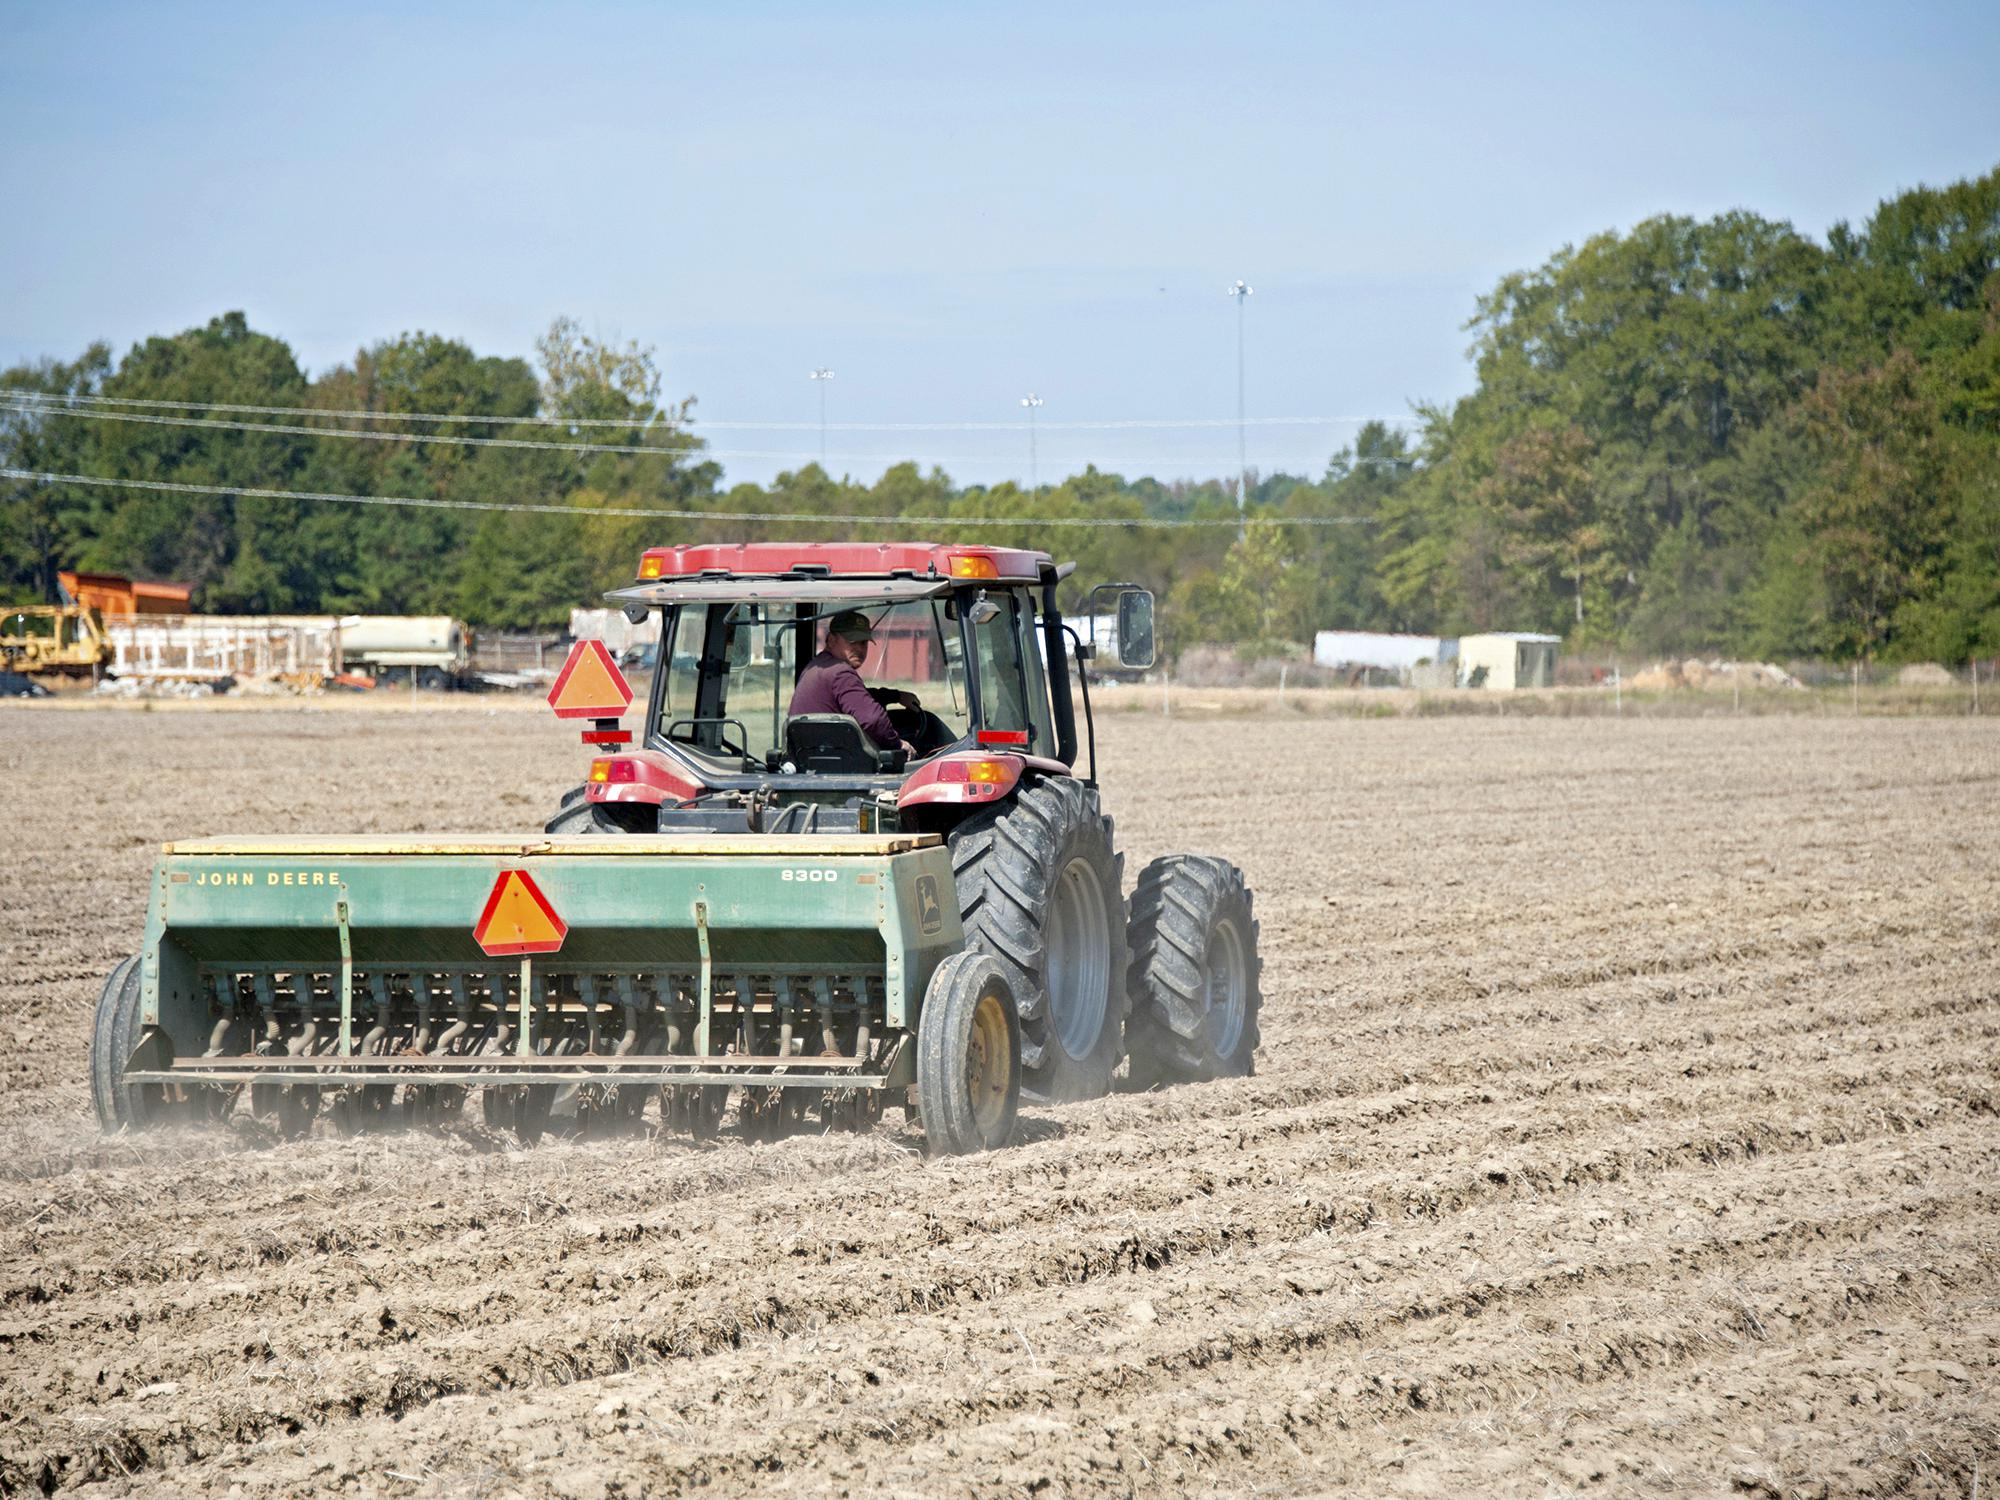 Wheat acreage is expected to be up from last year, but the ground across most of the state was too dry to plant through October. Blake Garrard is shown planting wheat last fall at the Mississippi State University Rodney Foil Plant Science Research Center in Starkville. (File photo by MSU Extension/Kat Lawrence)